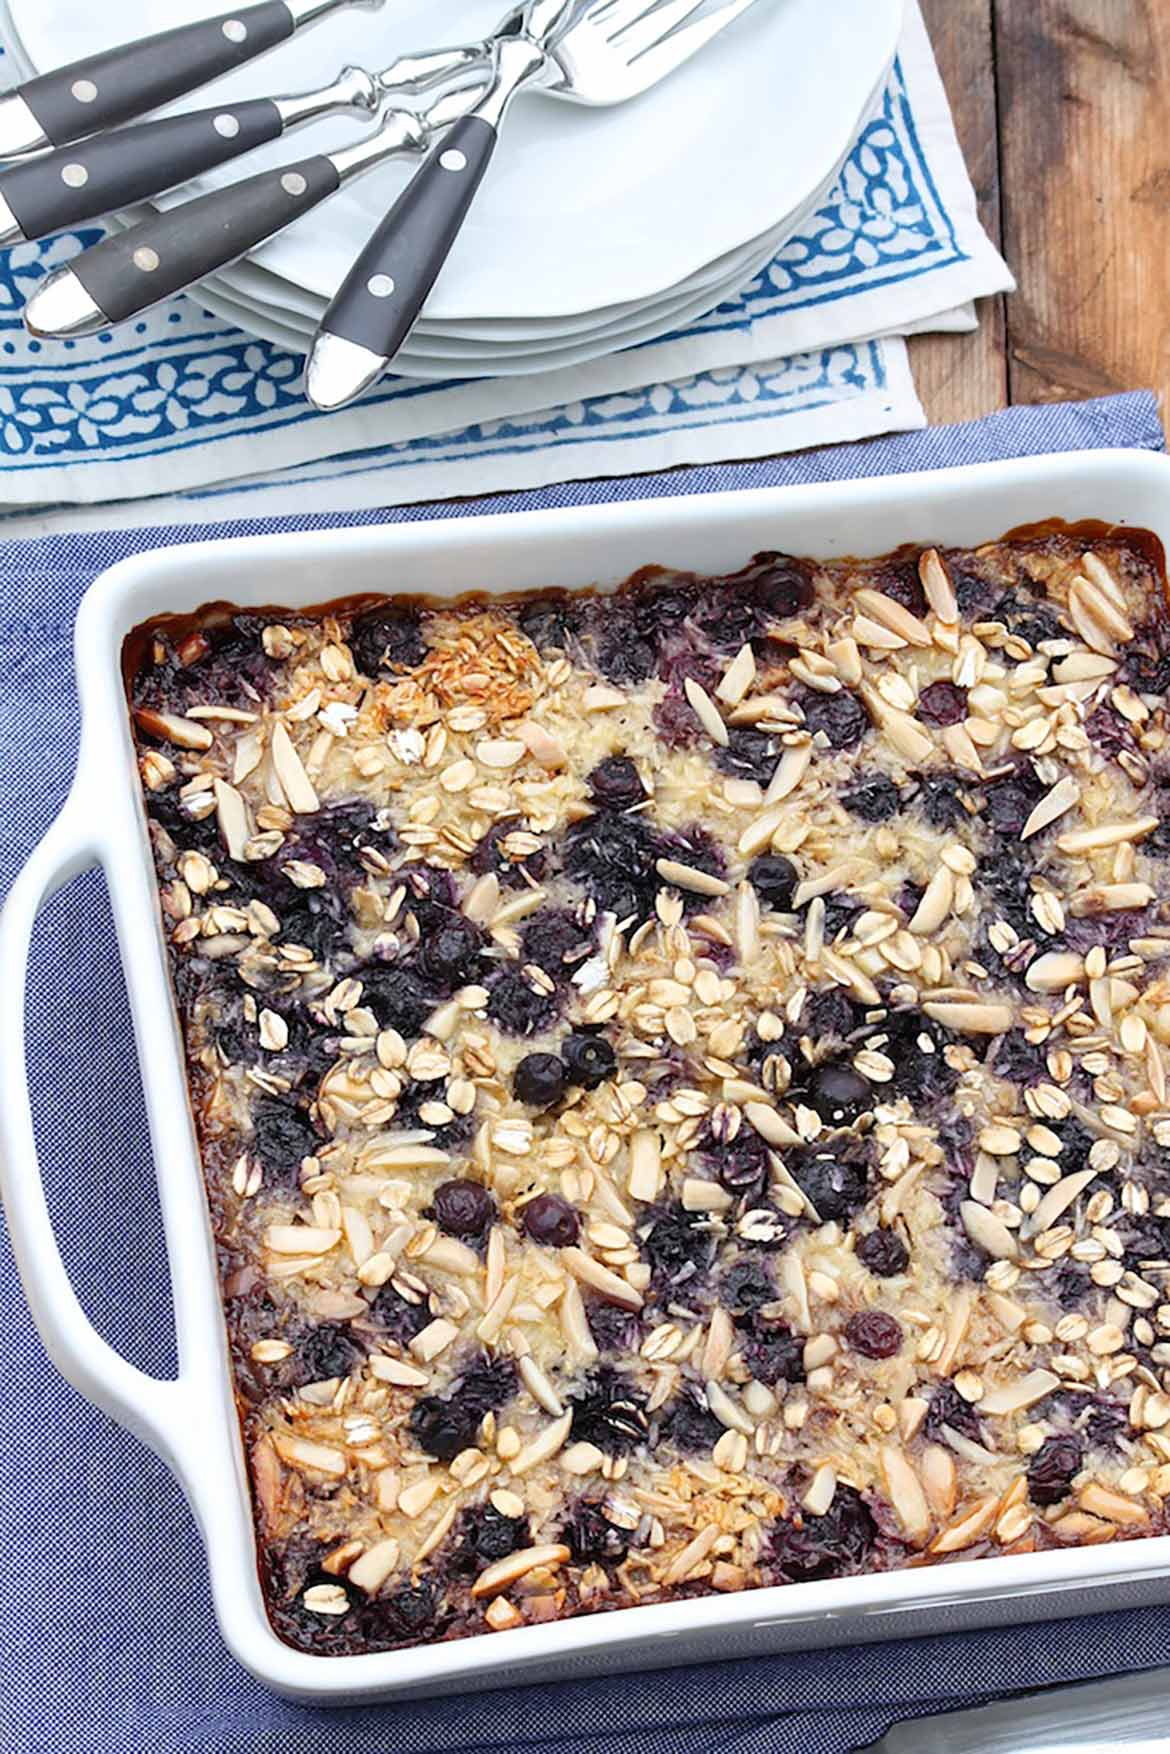 For added ease, prepare this filling casserole the night before and gently reheat in the morning. Serve as is or with a dollop of Greek yogurt or a drizzle of milk. If you don't care for coconut, simply omit it from the recipe.